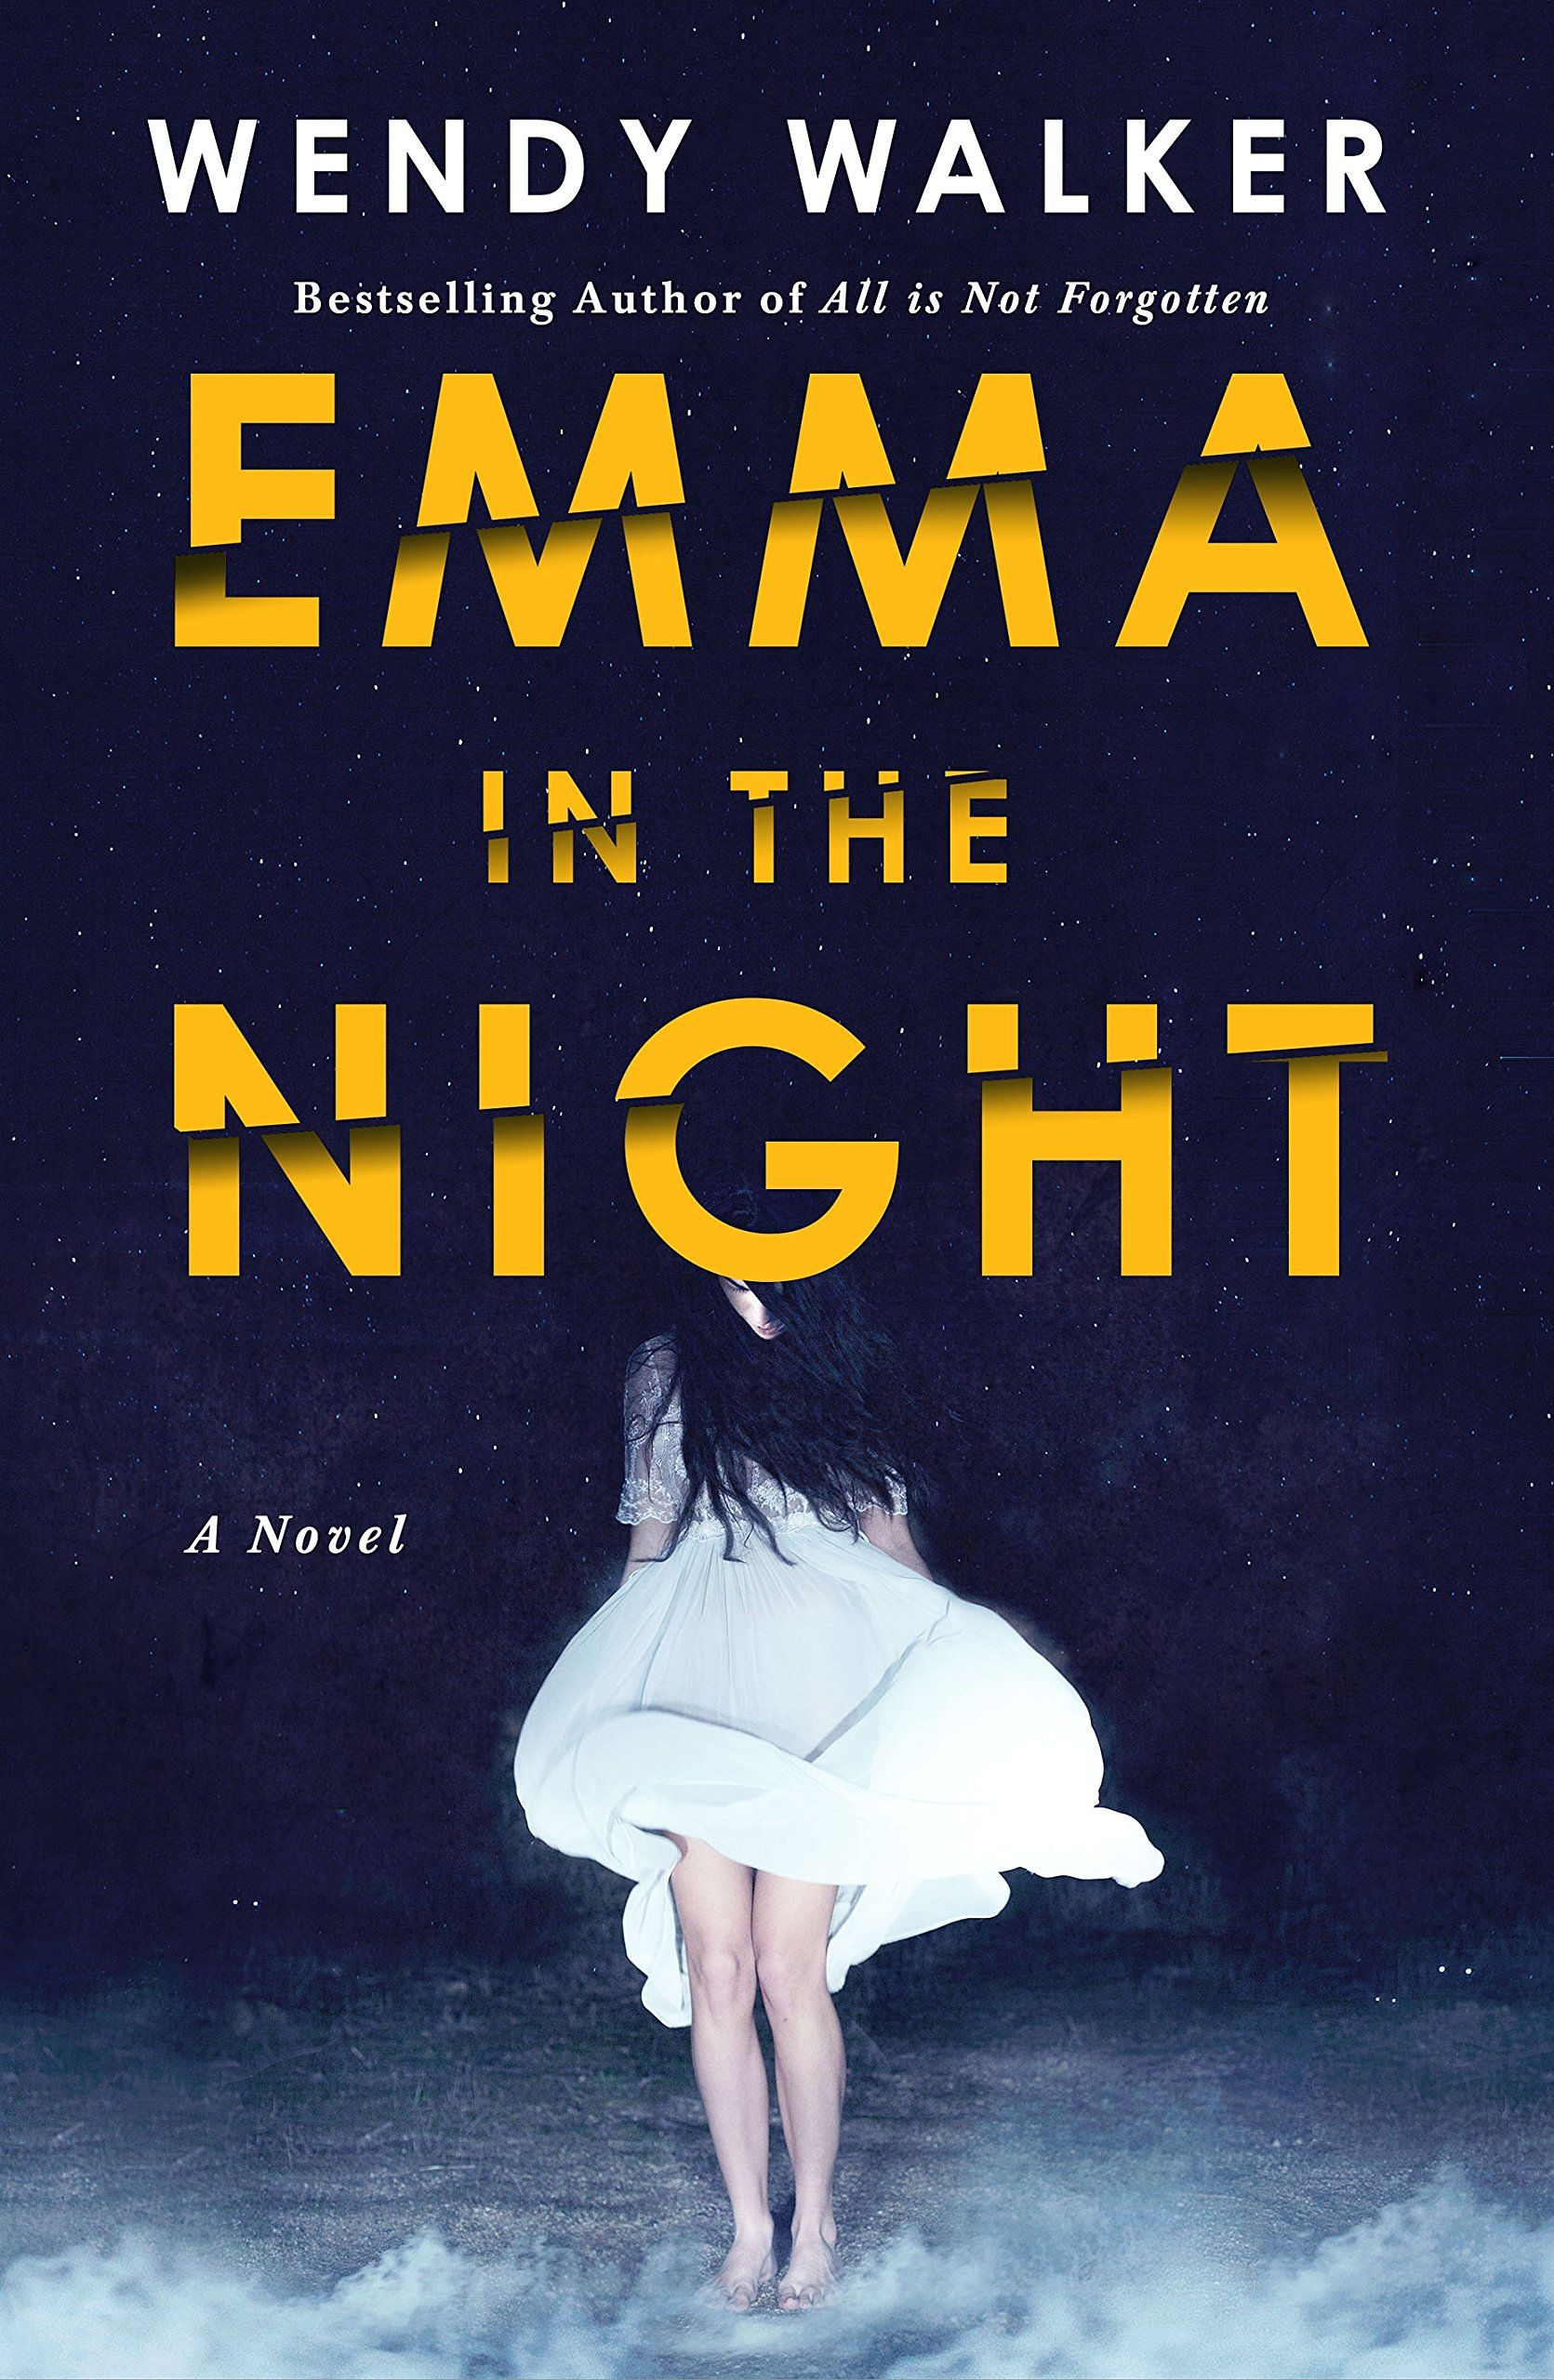 Preview Book Wendy Walker Emma In The Night With Images